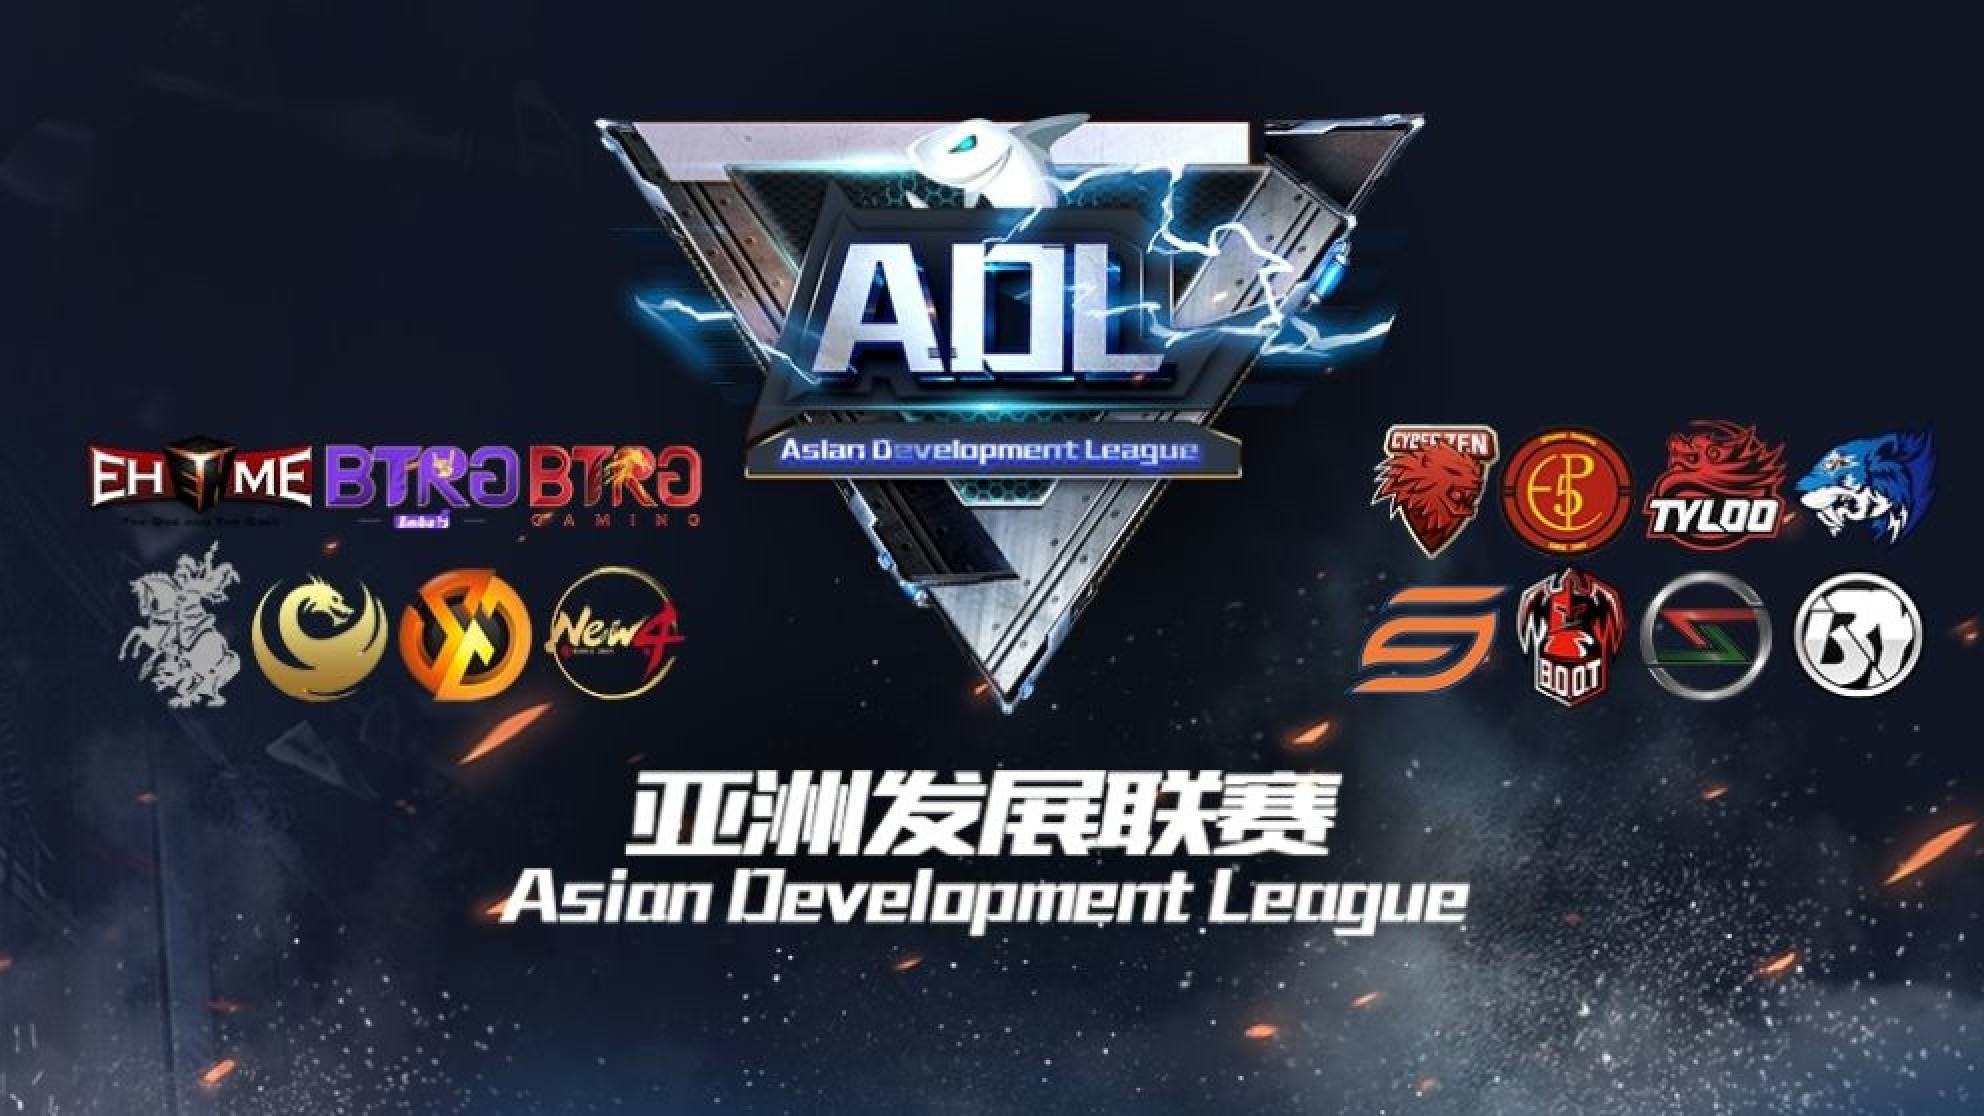 New Asian Development League with $25,000 in cash